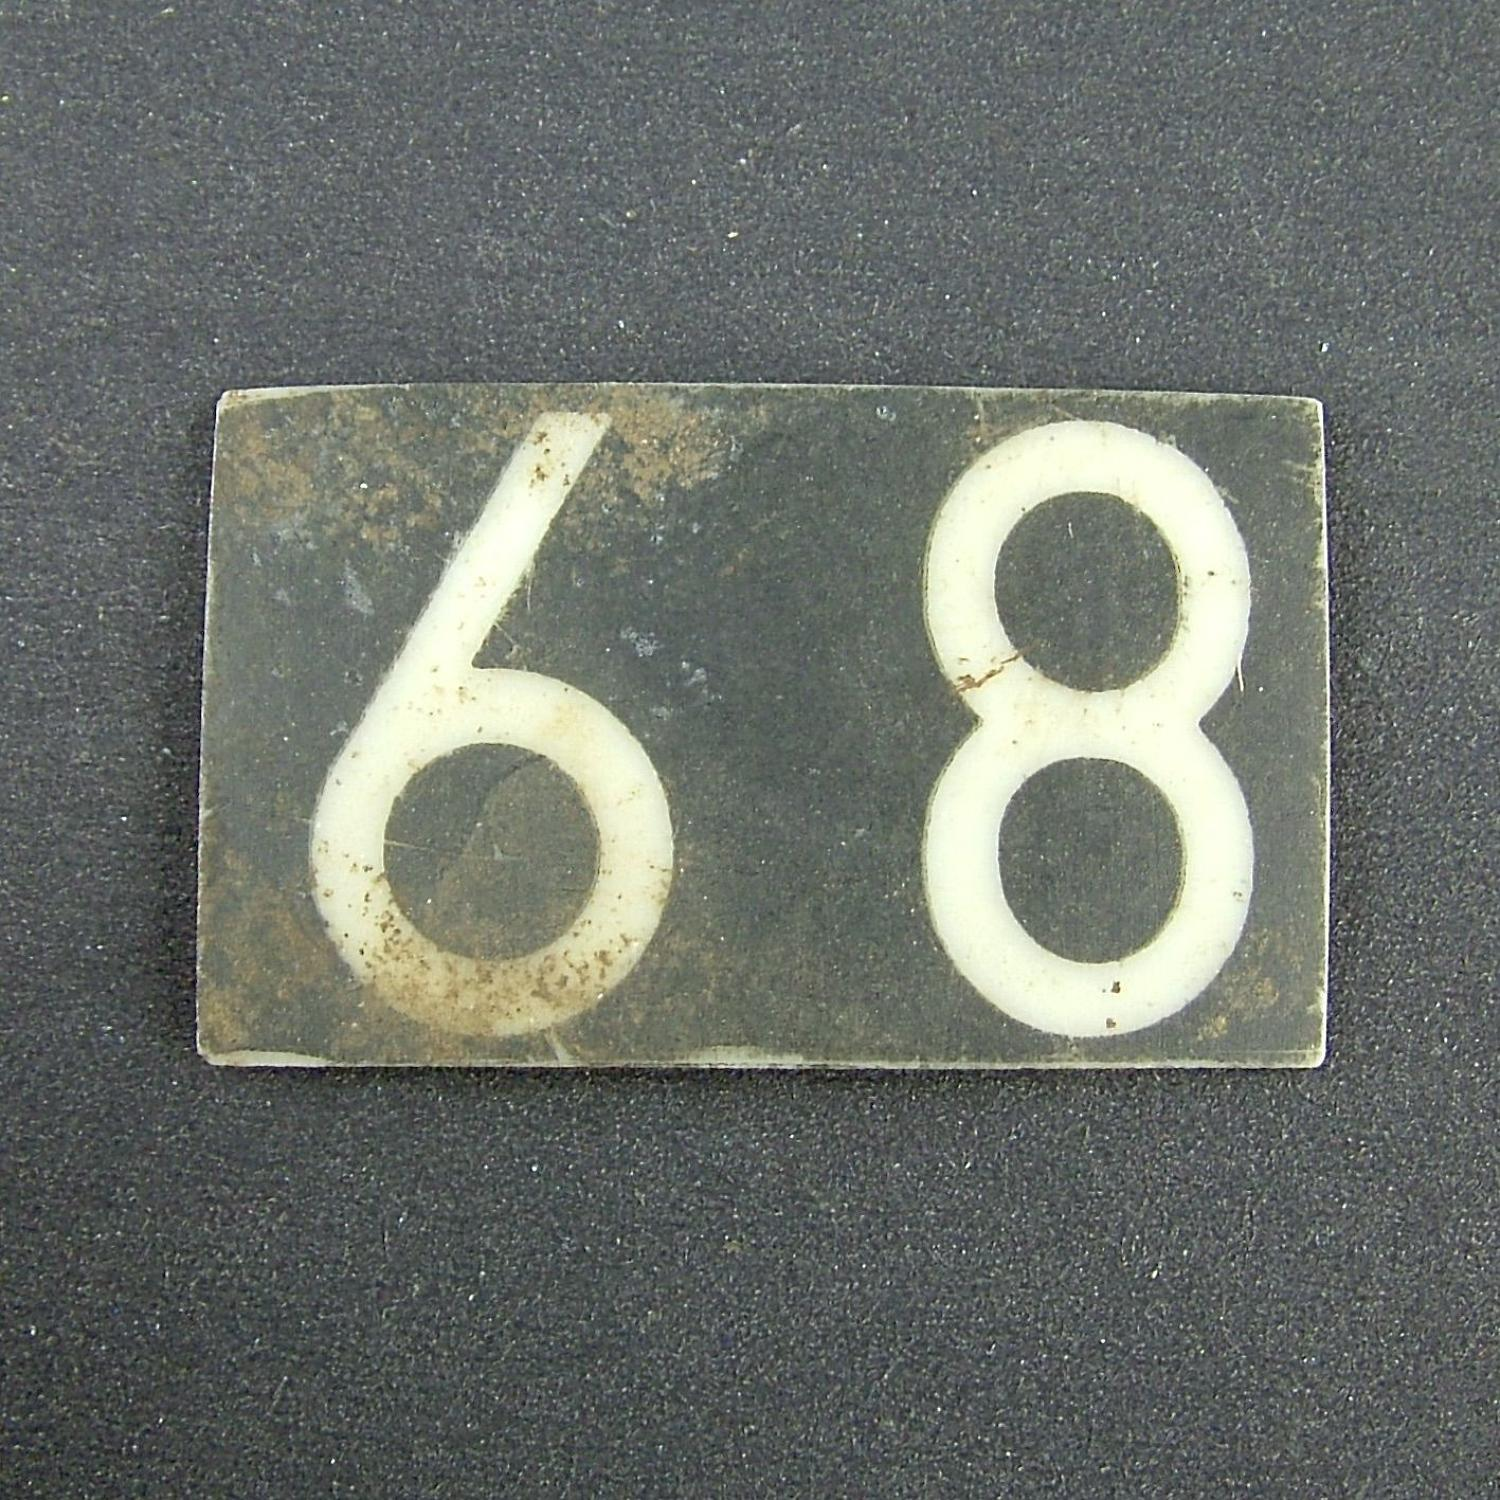 RAF operations room raid block tile '89'